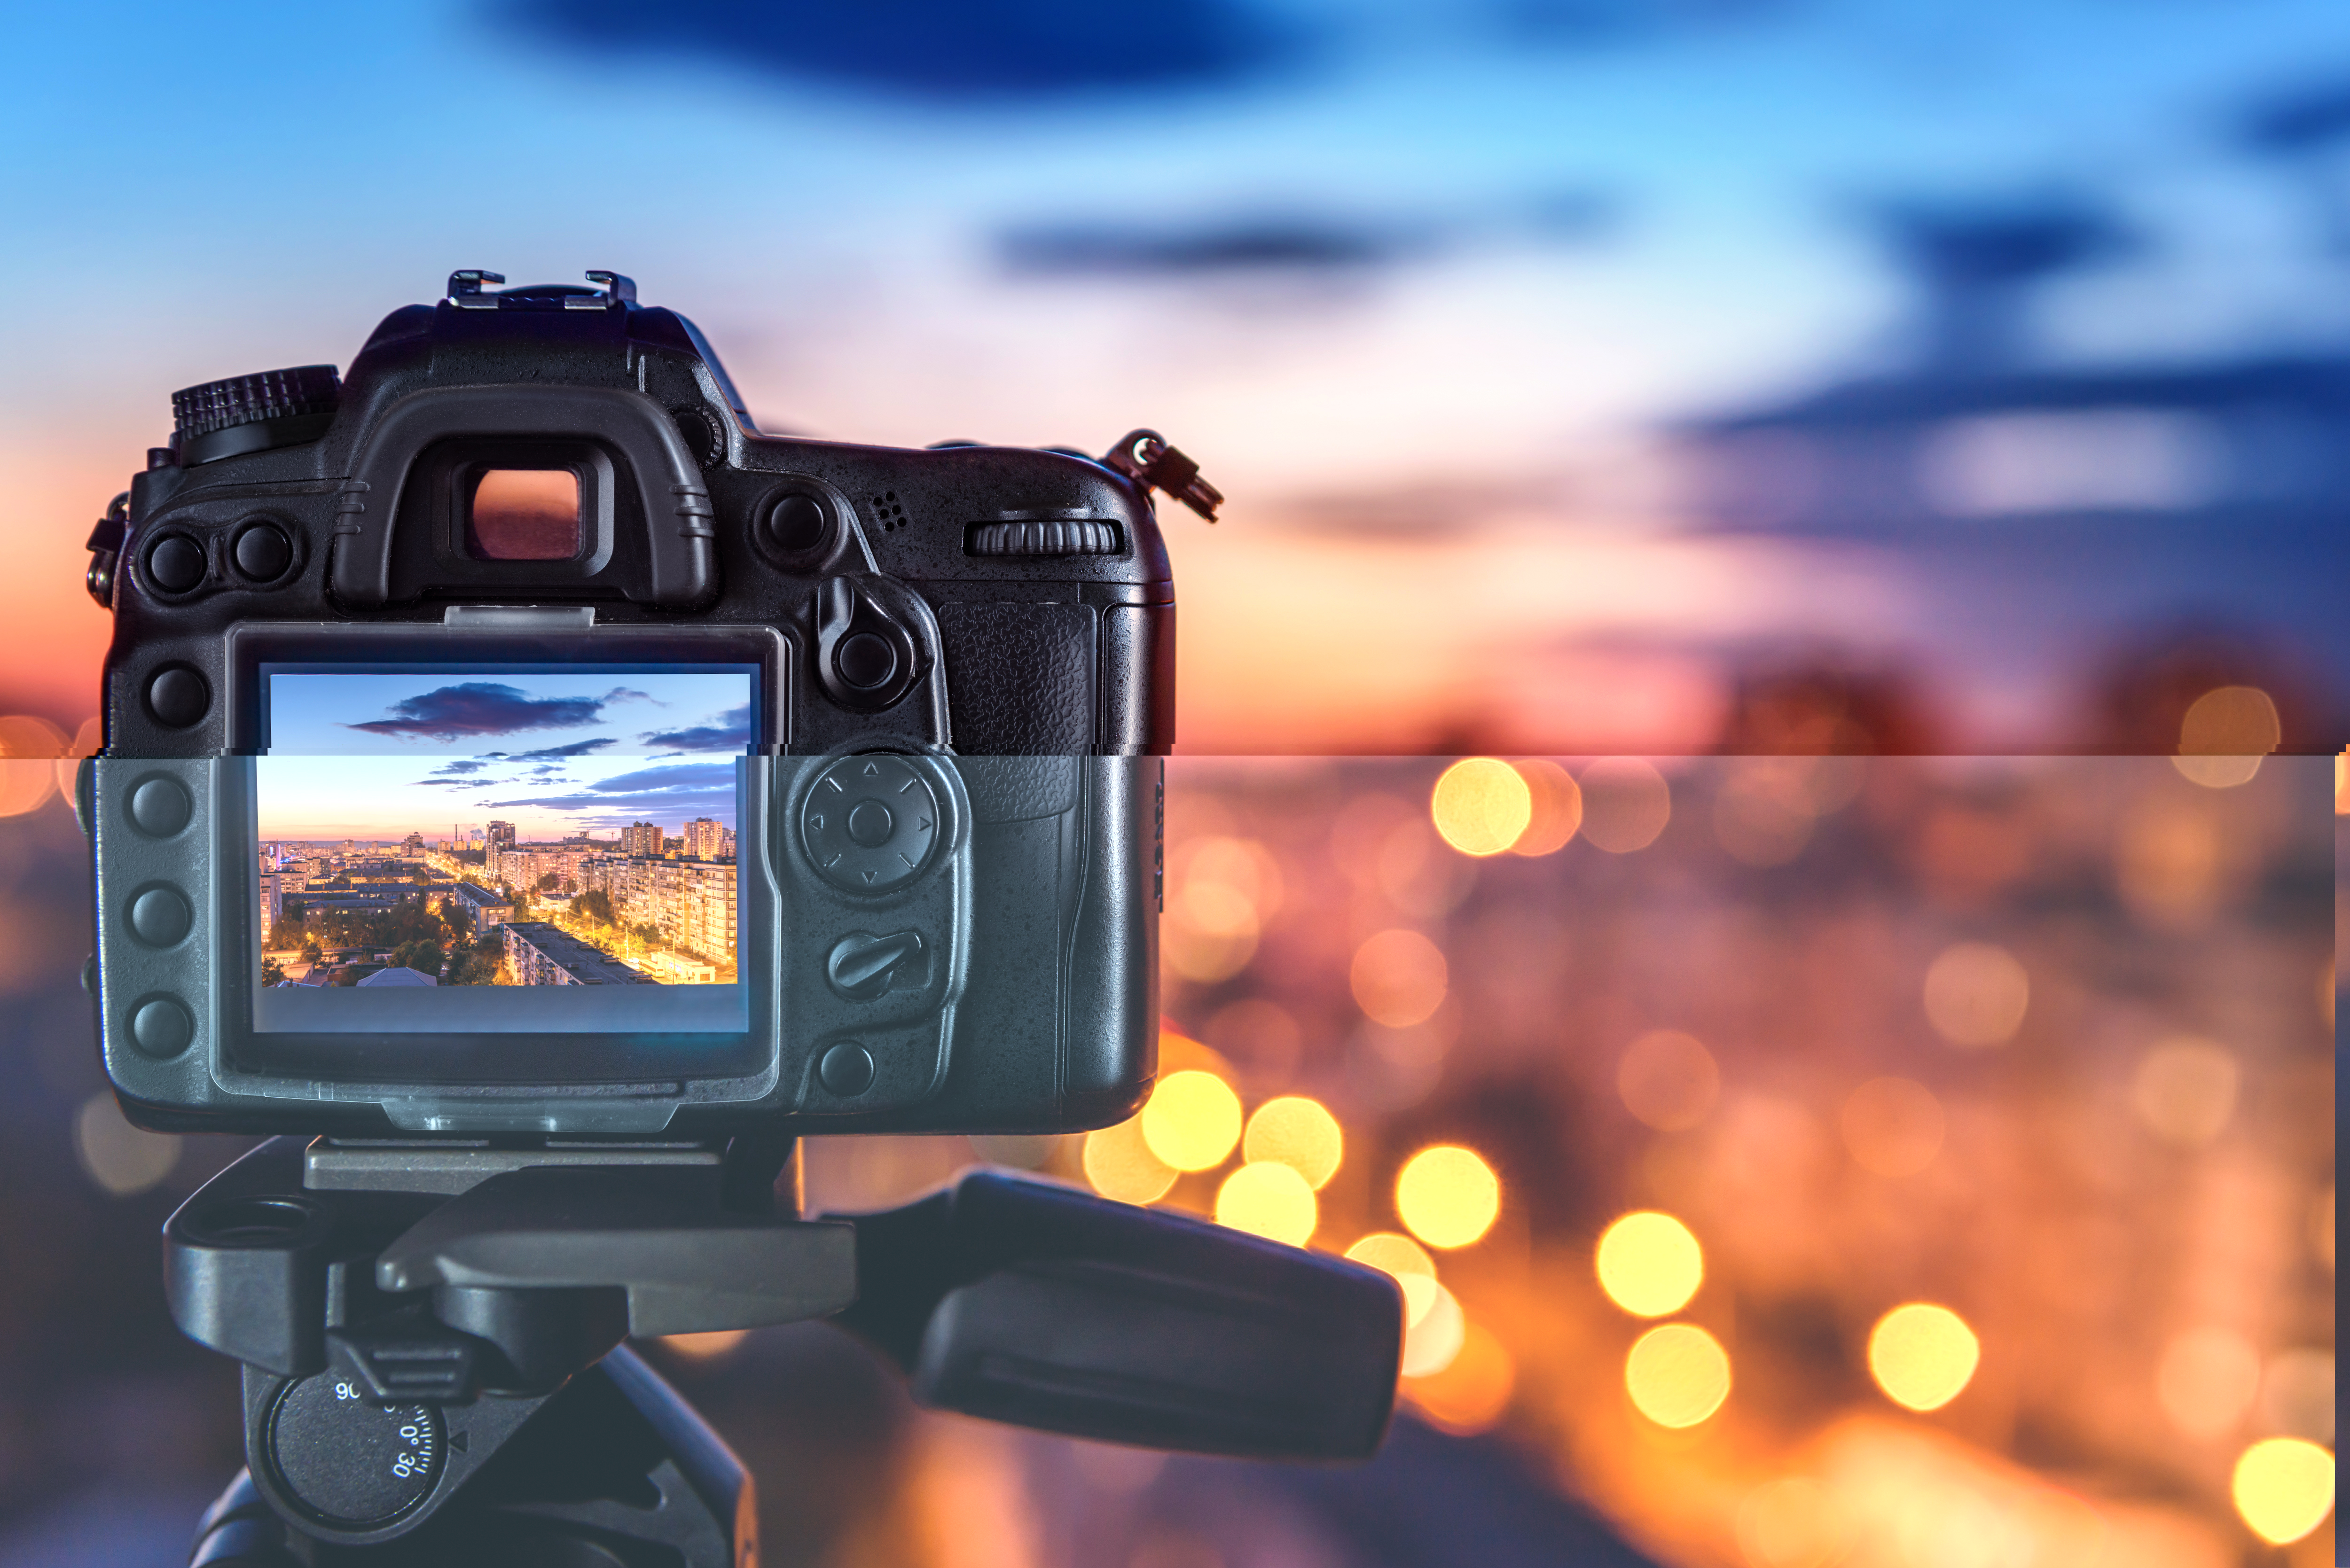 this is an image of a camera looking on to a sunset with lights